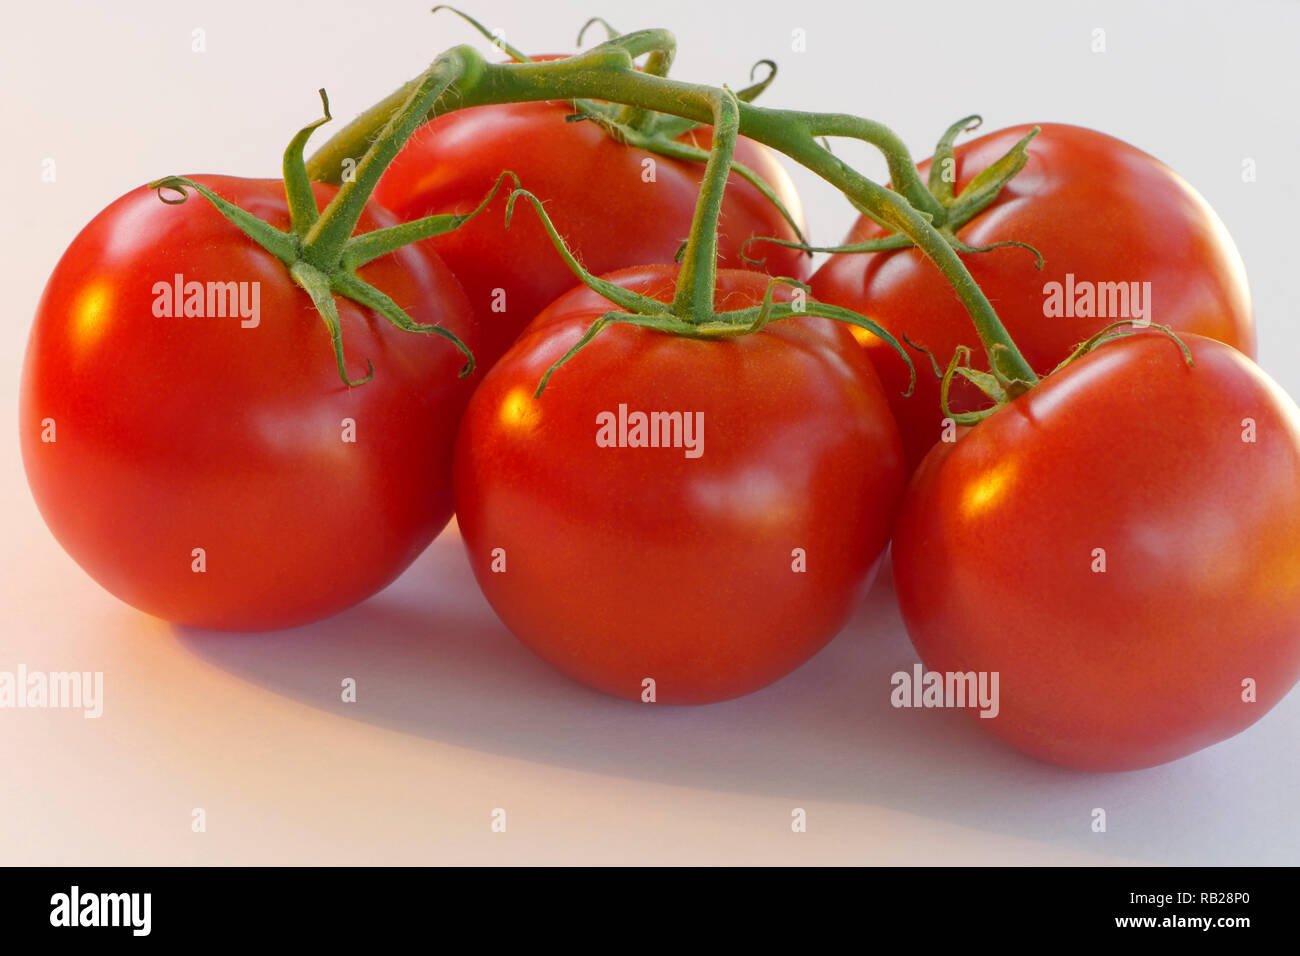 Five round, red tomatoes on the vine (Solanum lycopersicum) on a white background. - Stock Image